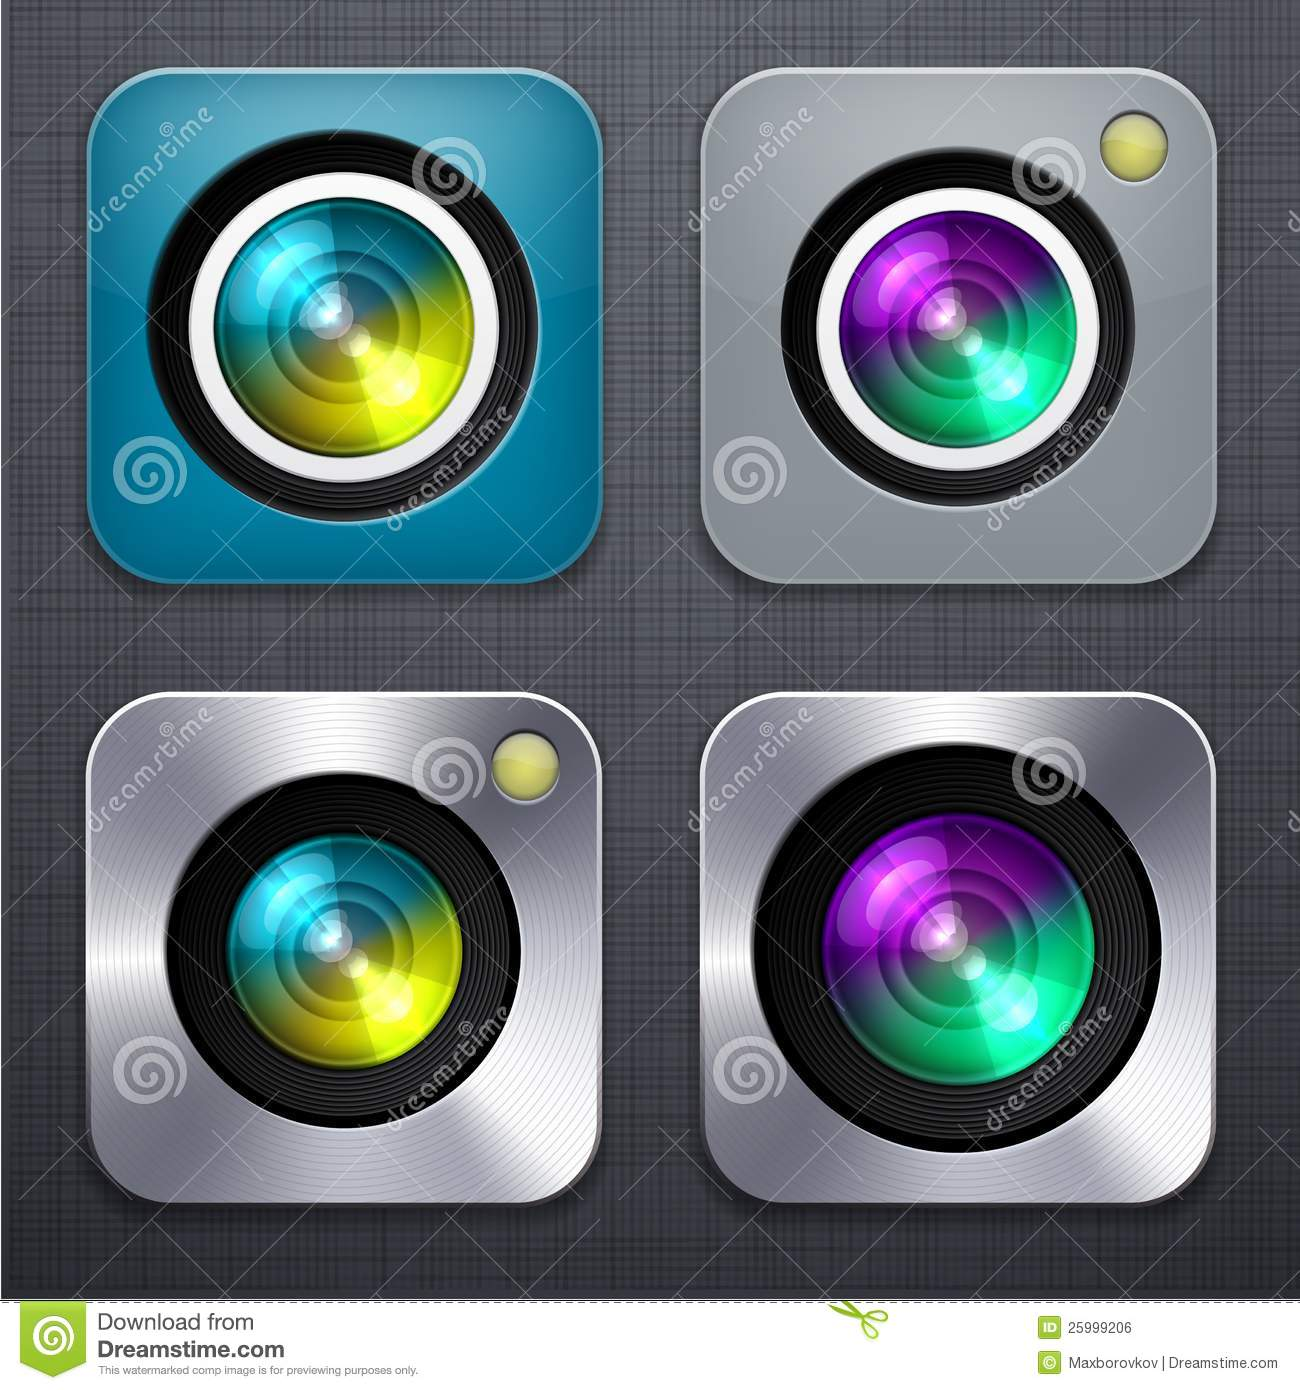 8 Camera Icon Modern Images